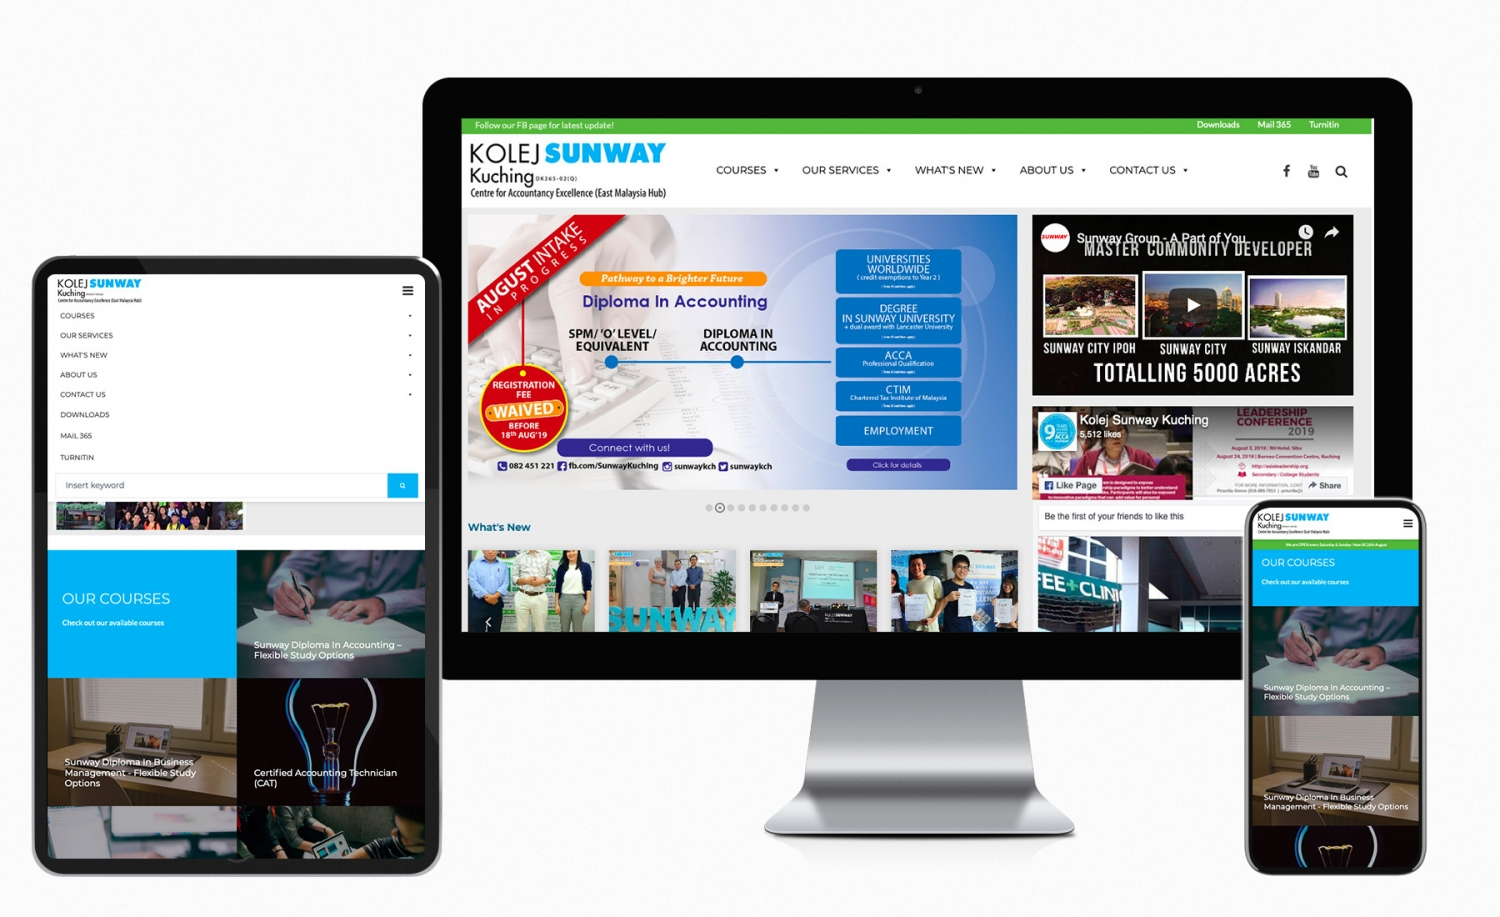 Kolej Sunway Kuching website redesign and improvement.